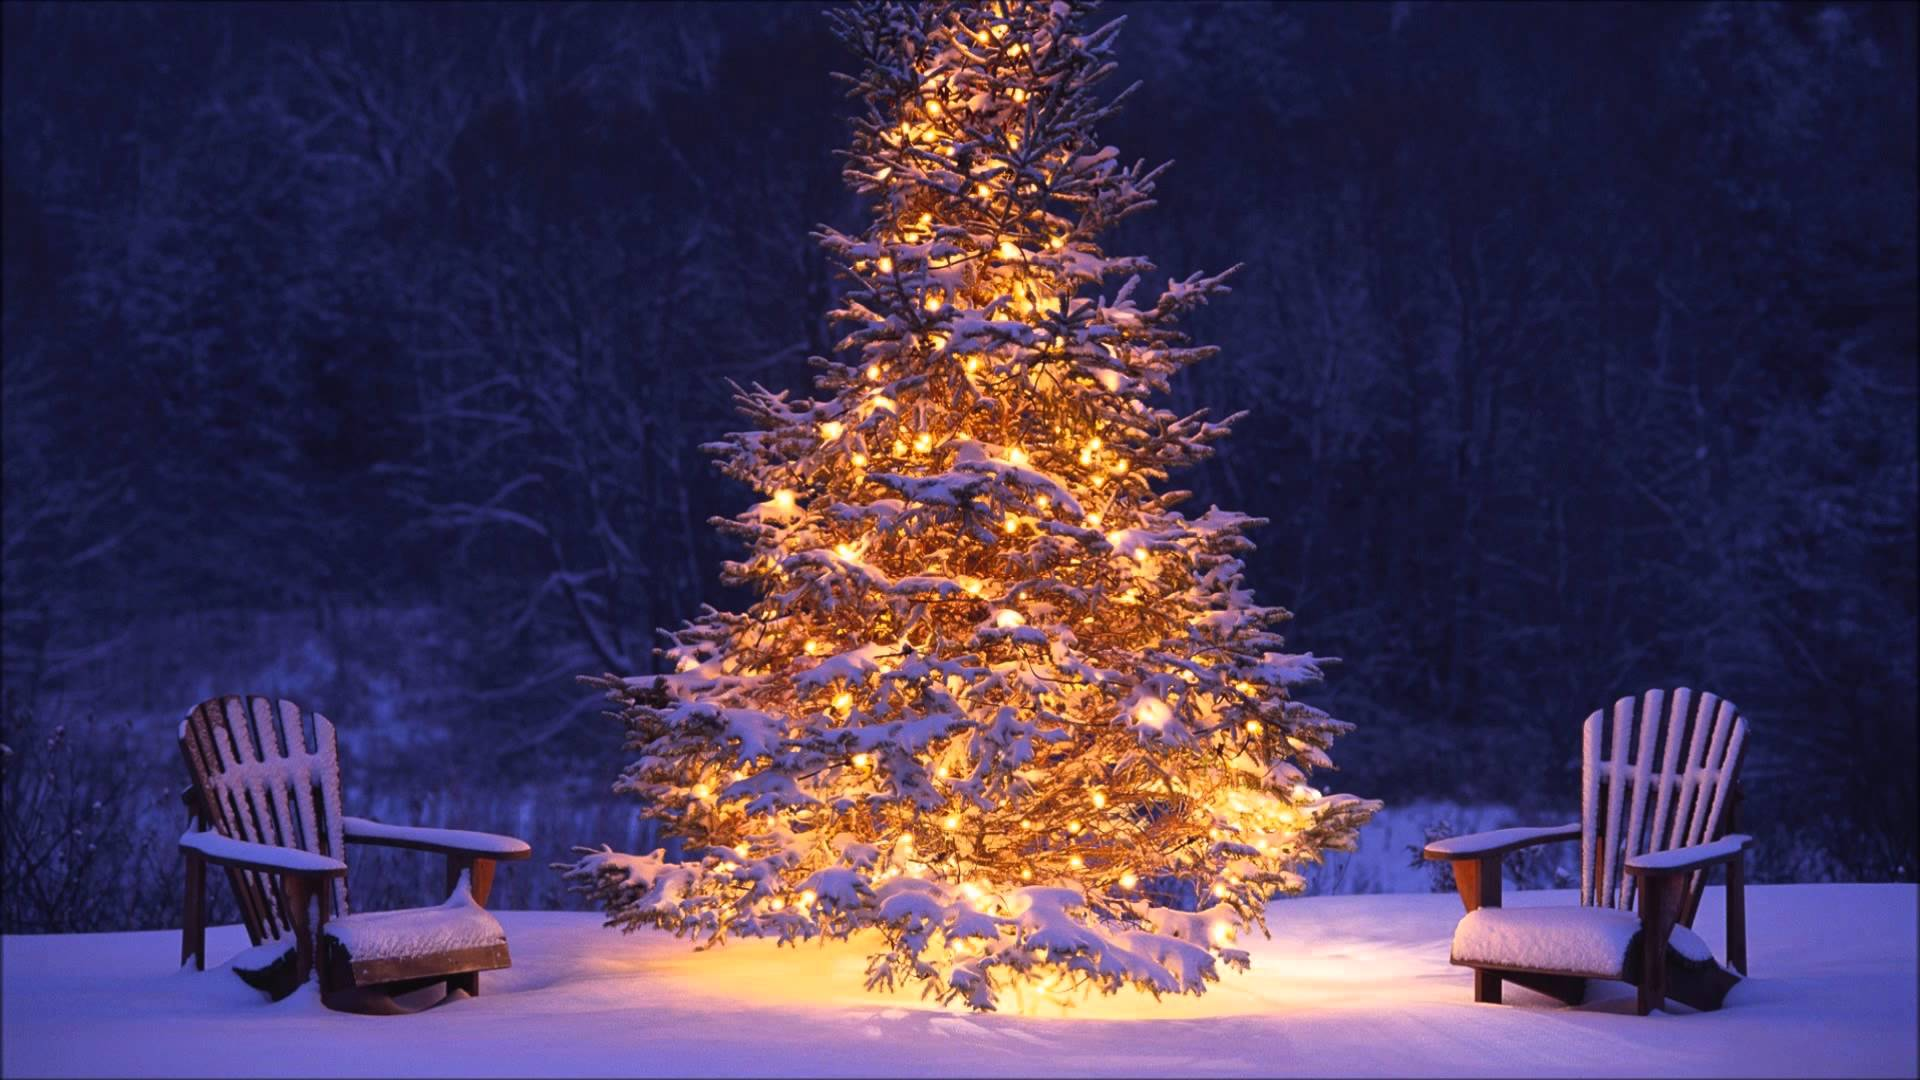 Christmas Tree Light Image HD Wallpaper